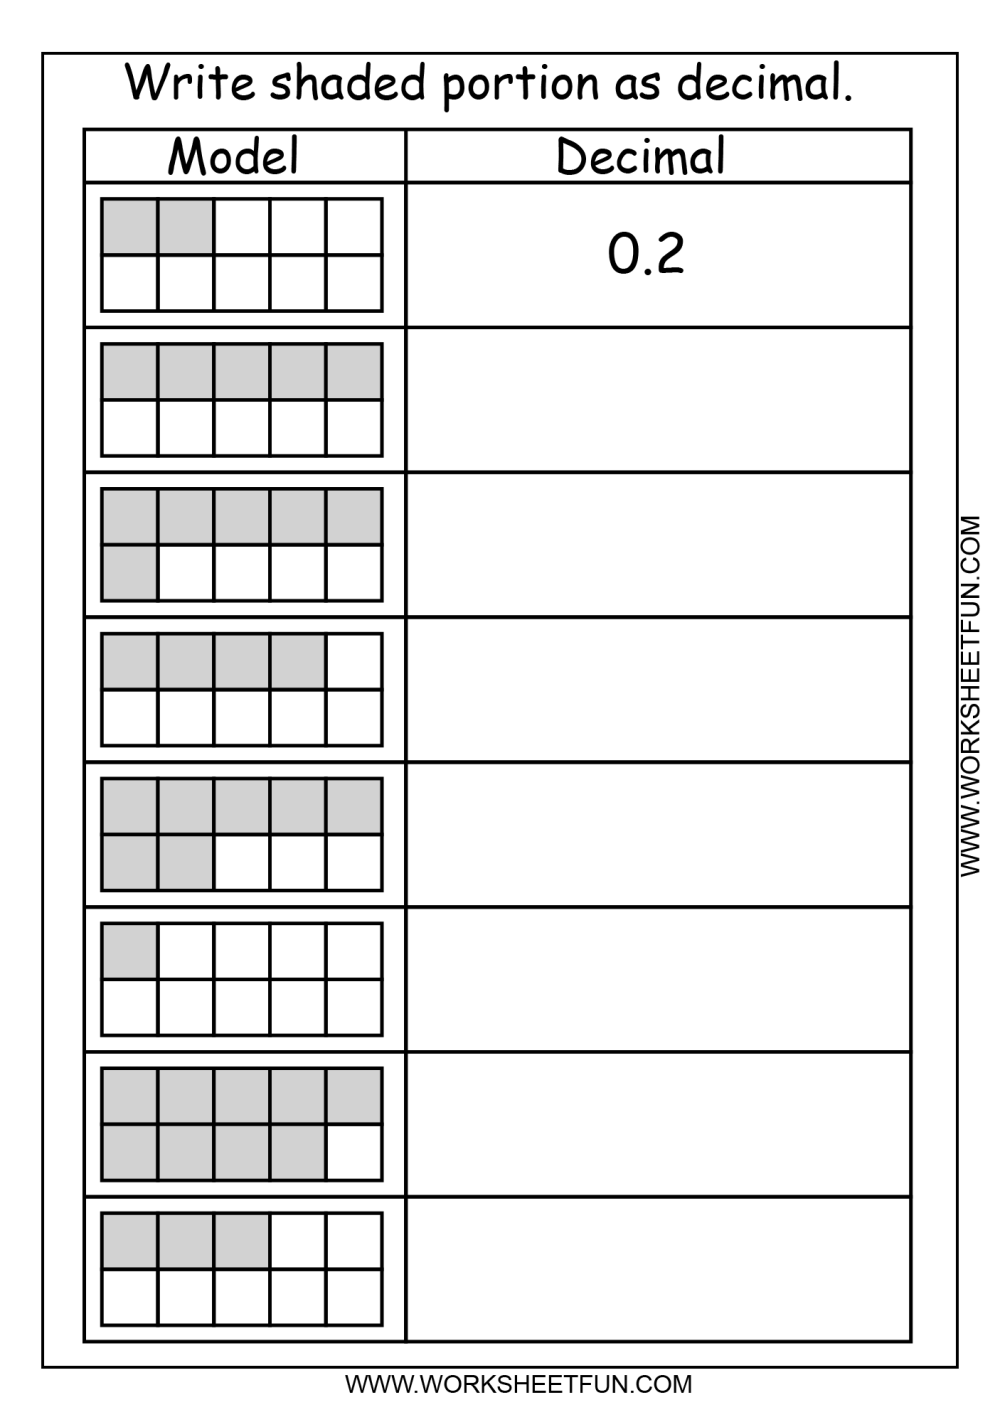 medium resolution of Add With Decimals Worksheet   Printable Worksheets and Activities for  Teachers